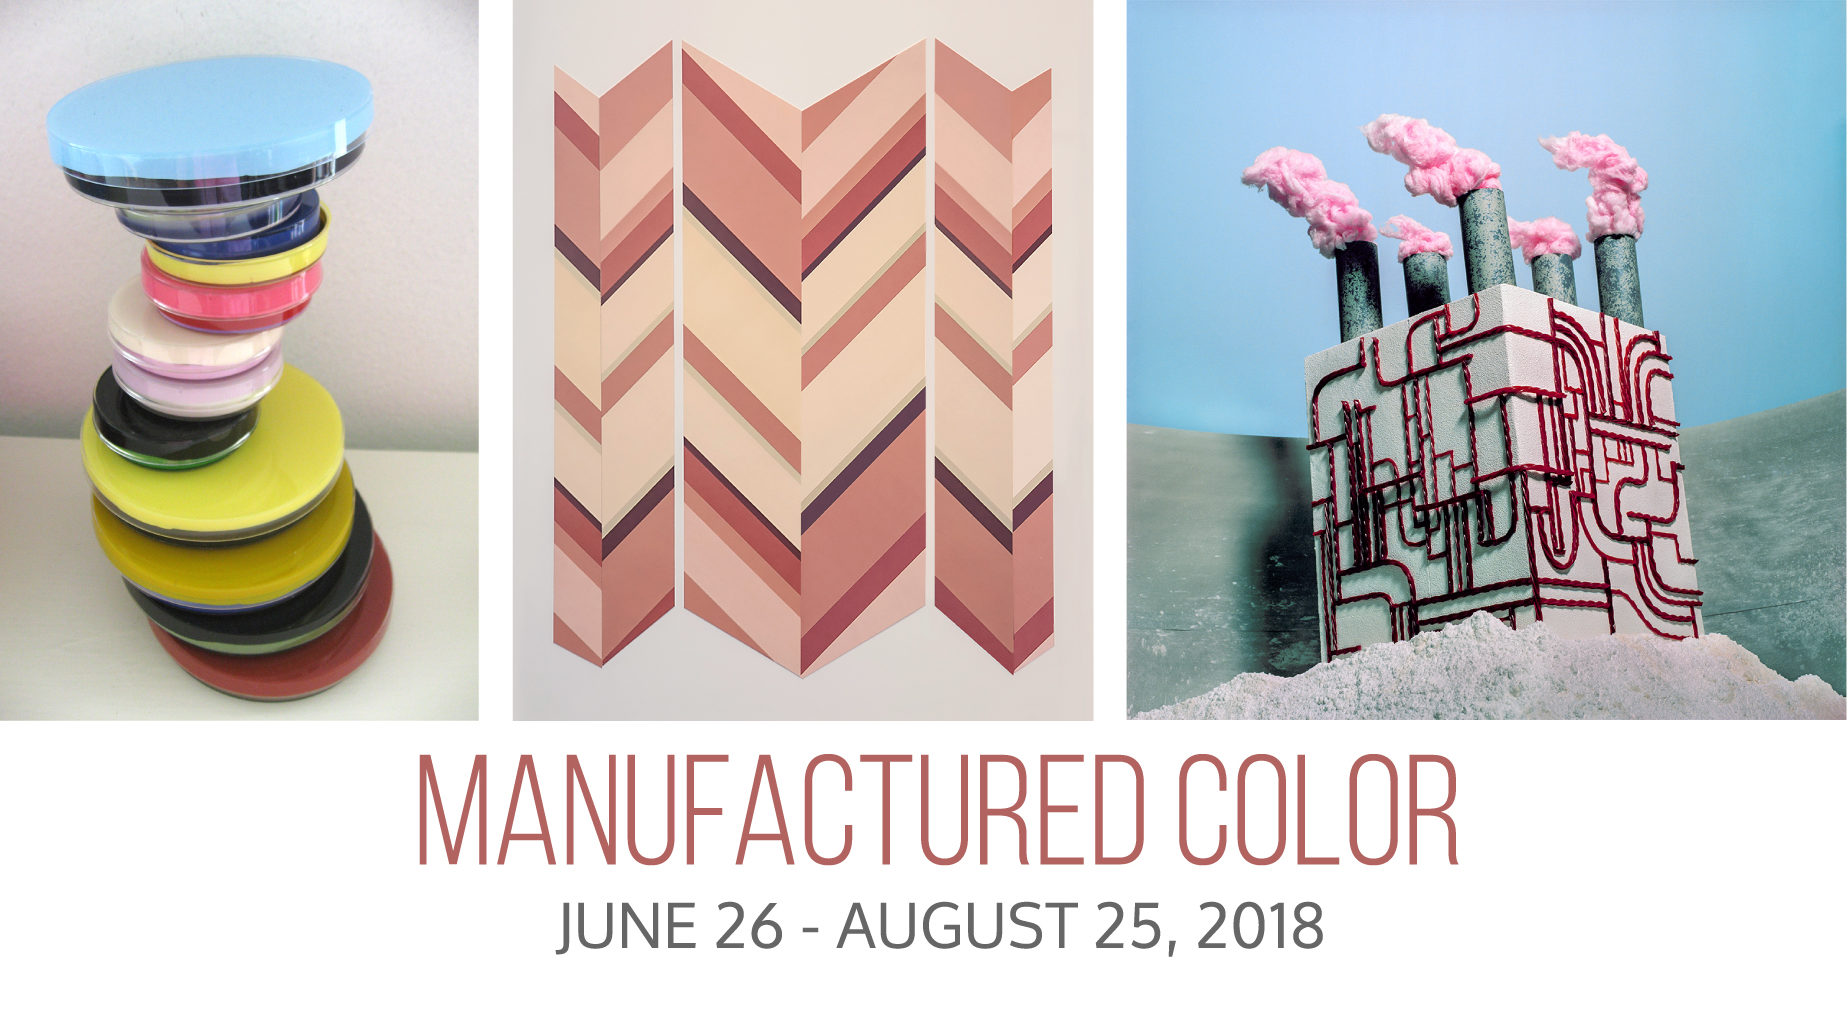 Manufactured Color Exhibition